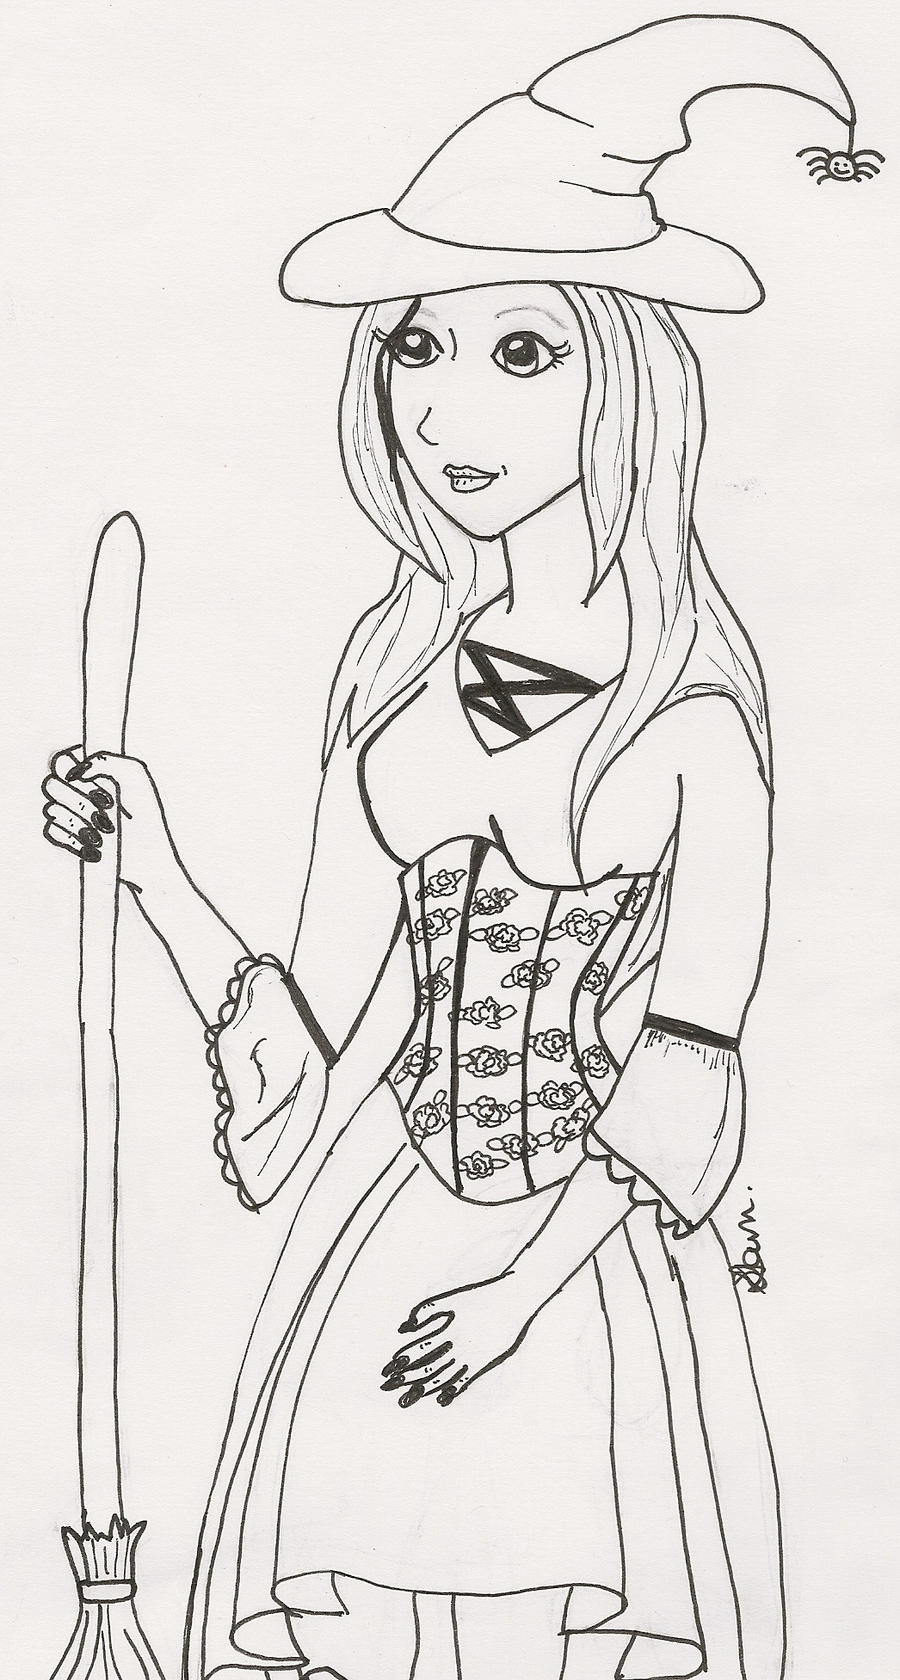 halloween costume line drawing by crimsonangel666 halloween costume line drawing by crimsonangel666 - Halloween Pictures To Draw